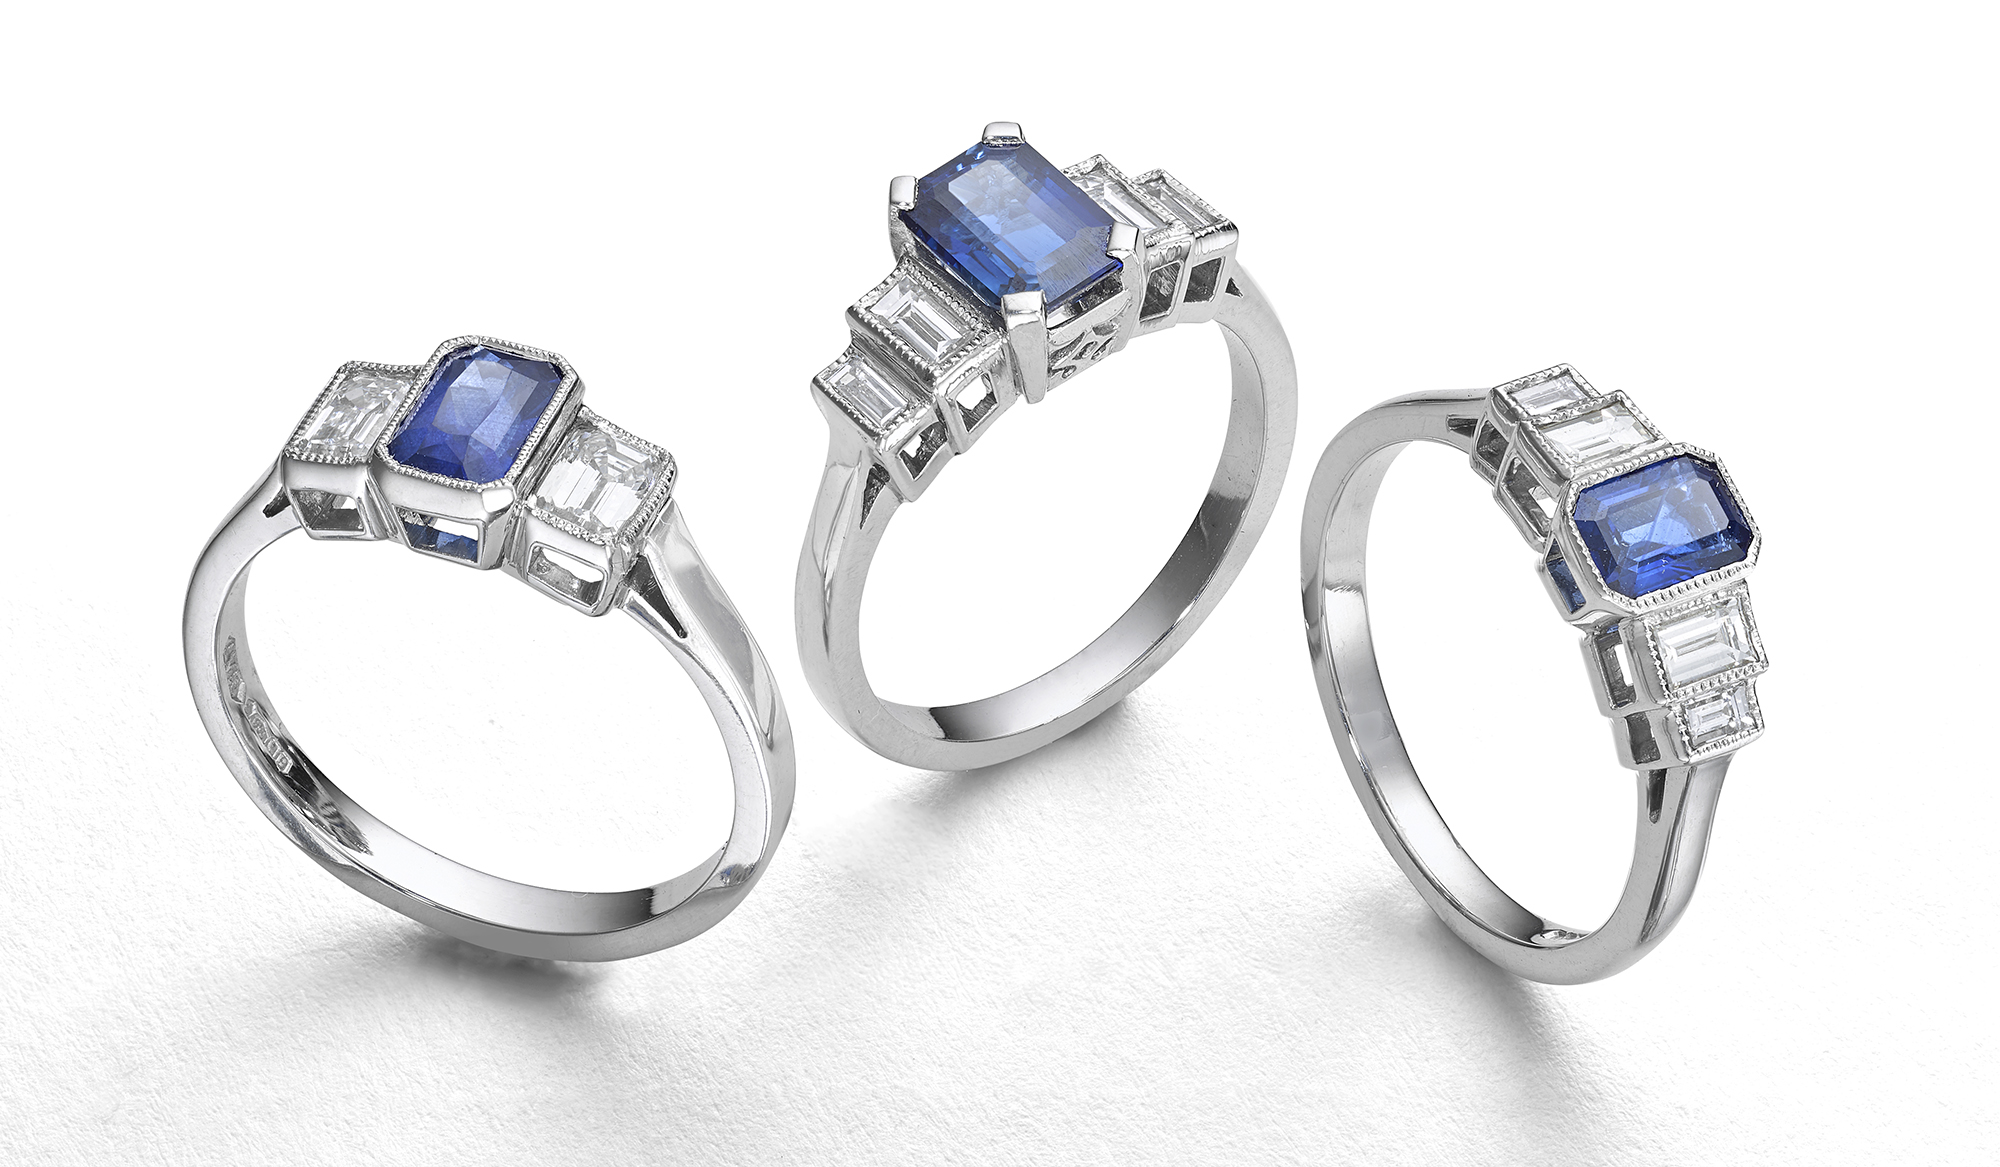 Creative still life jewellery photography, Set of three rings with soft shadow on white, blue saphires on silver rings, London jewellery photographer